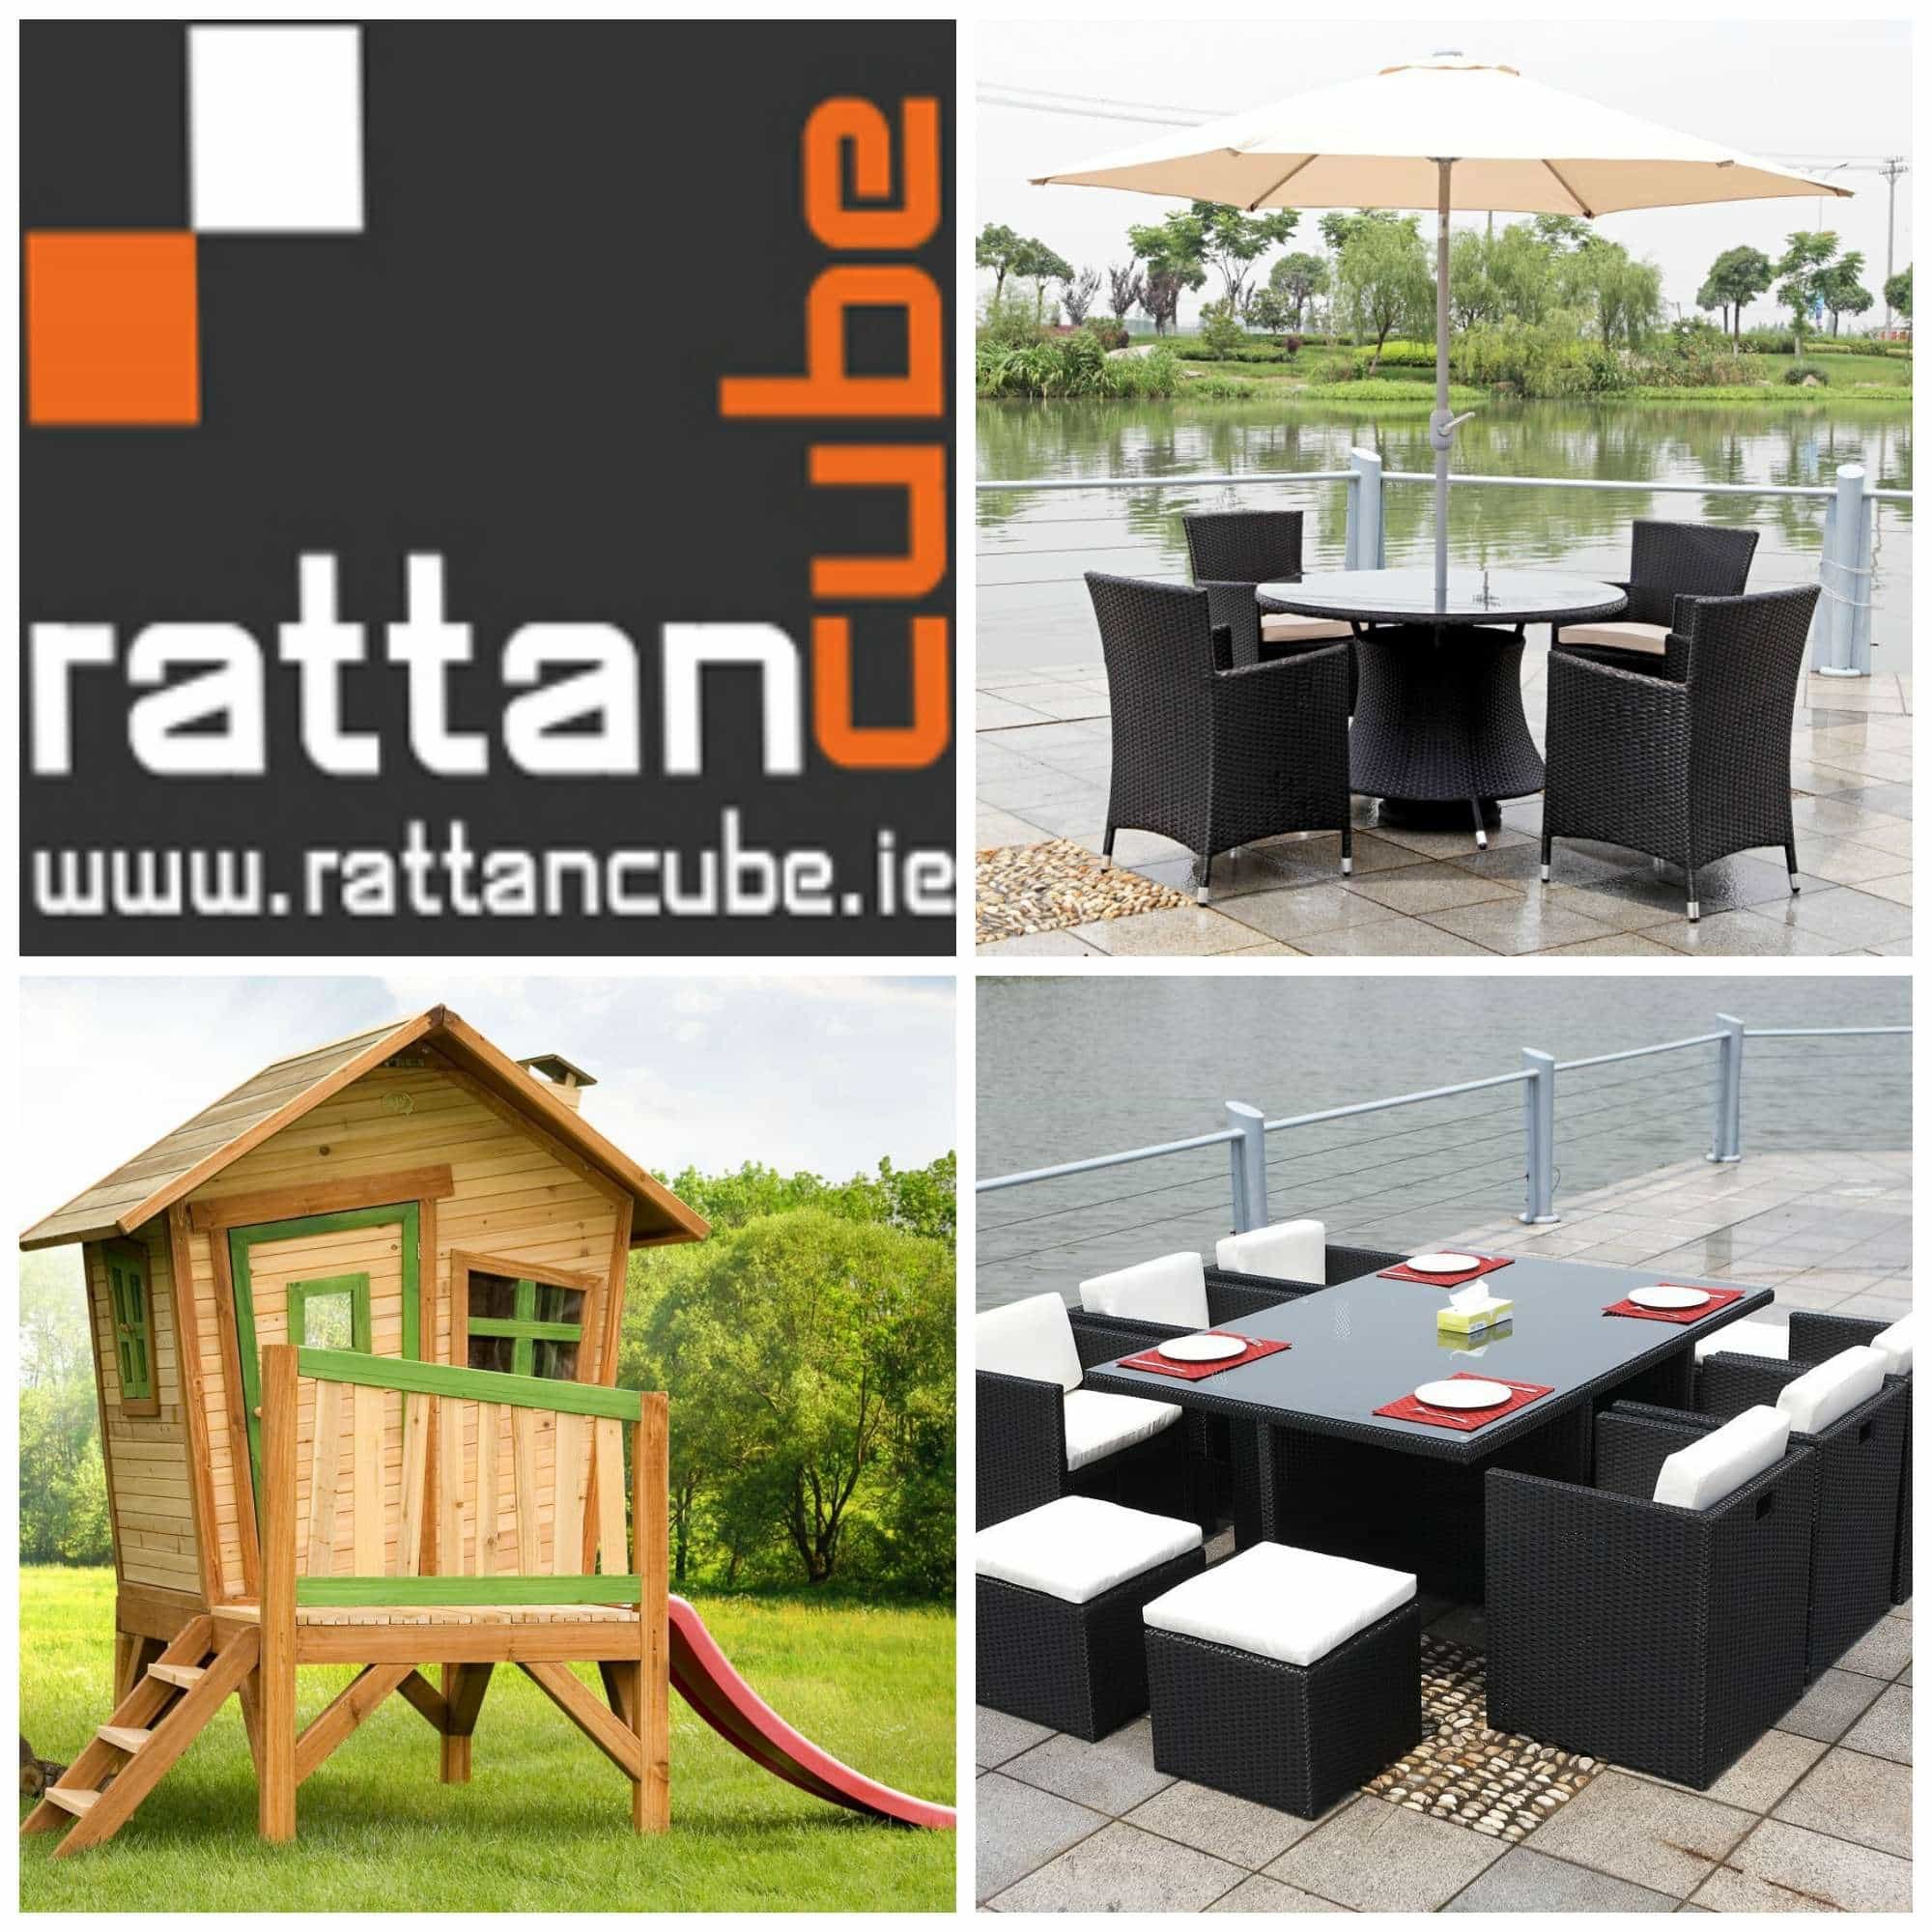 We have it covered this week at rattancube garden for Outdoor furniture ireland